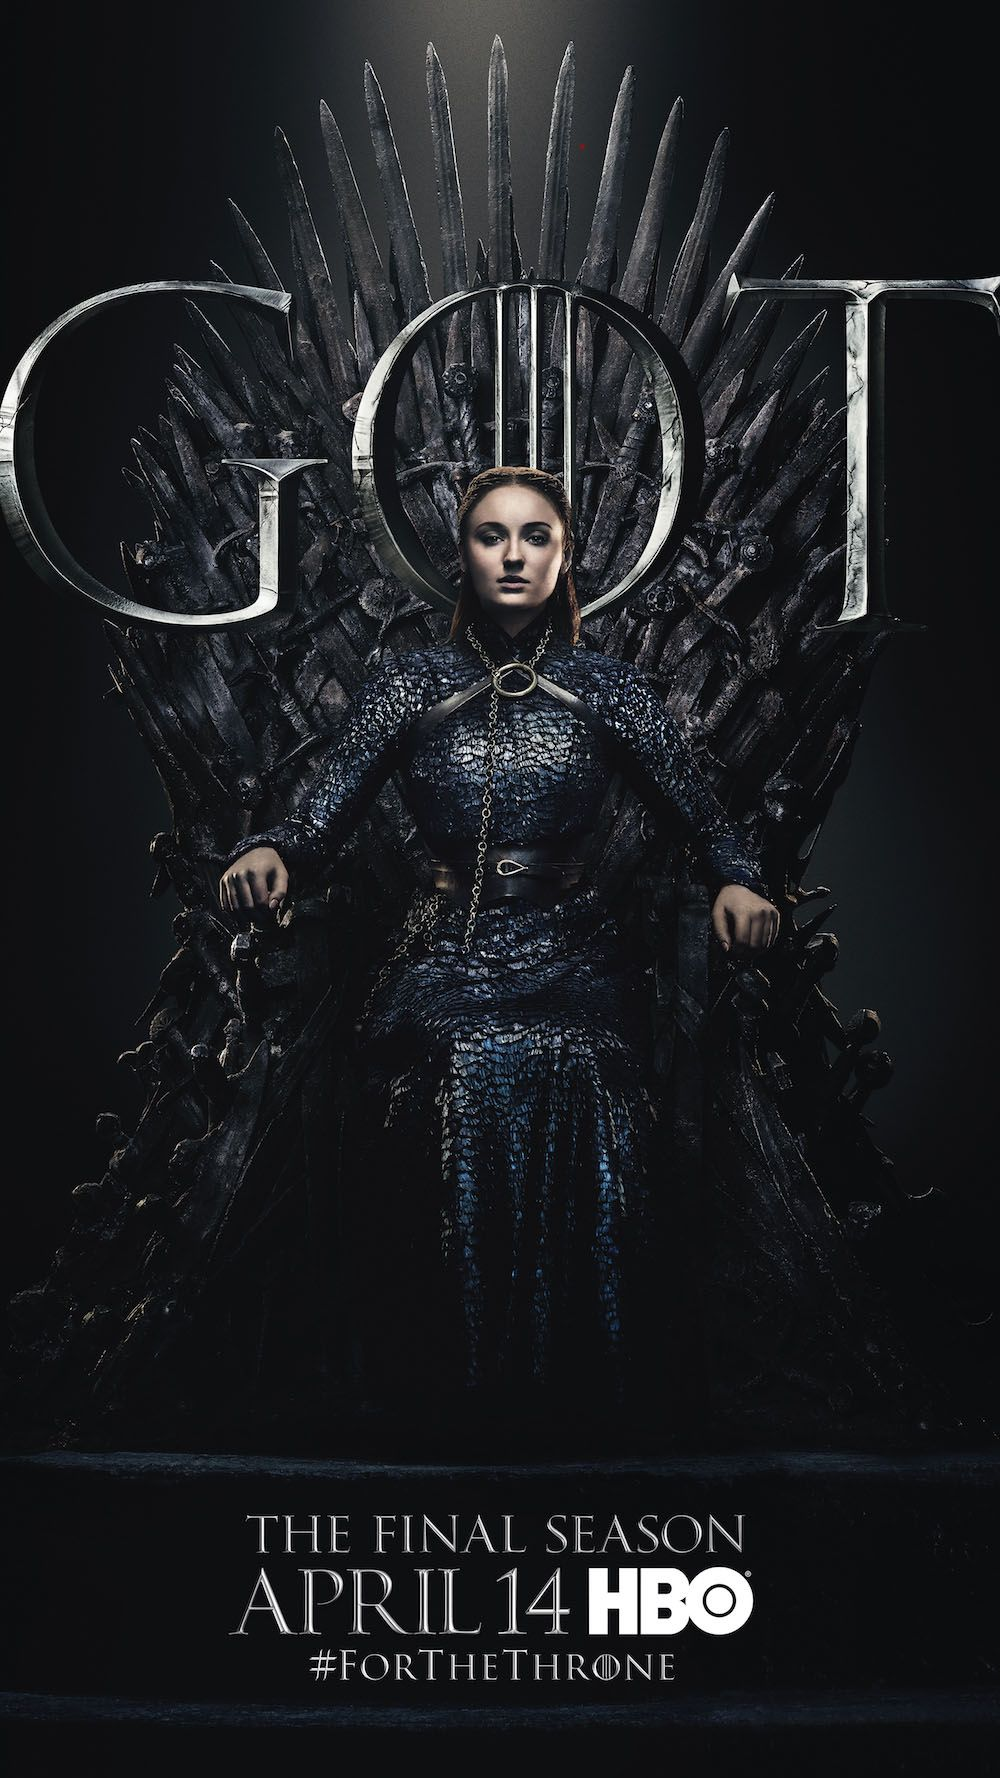 new game of thrones season 8 posters